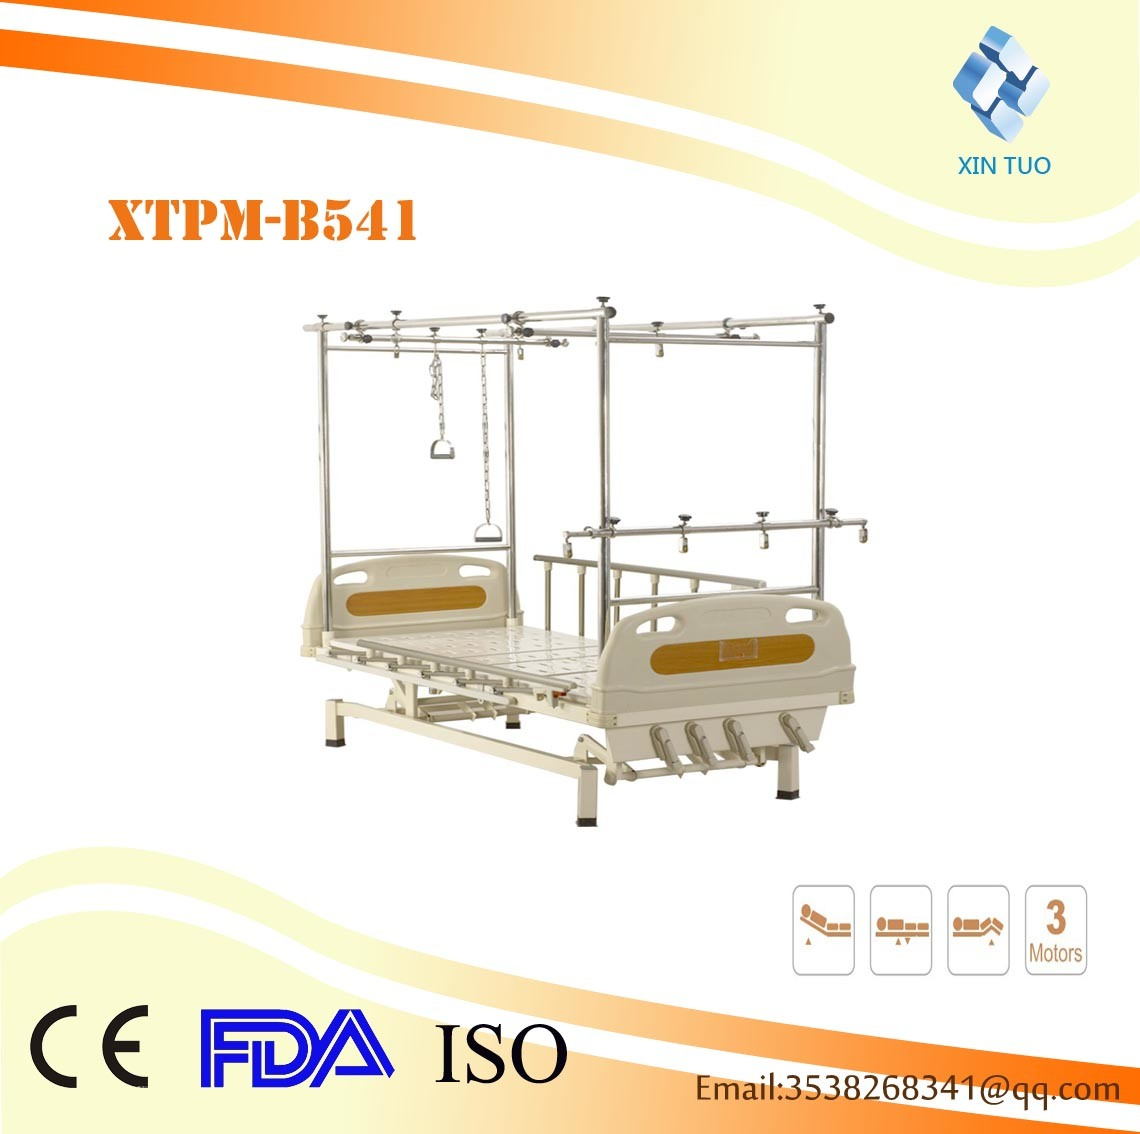 Manual Of Orthopaedics 34988 Robinair Ac Unit Wiring Diagram Array China Superior Quality Abs Three Function Rh Guangzhouxintuo En Made In